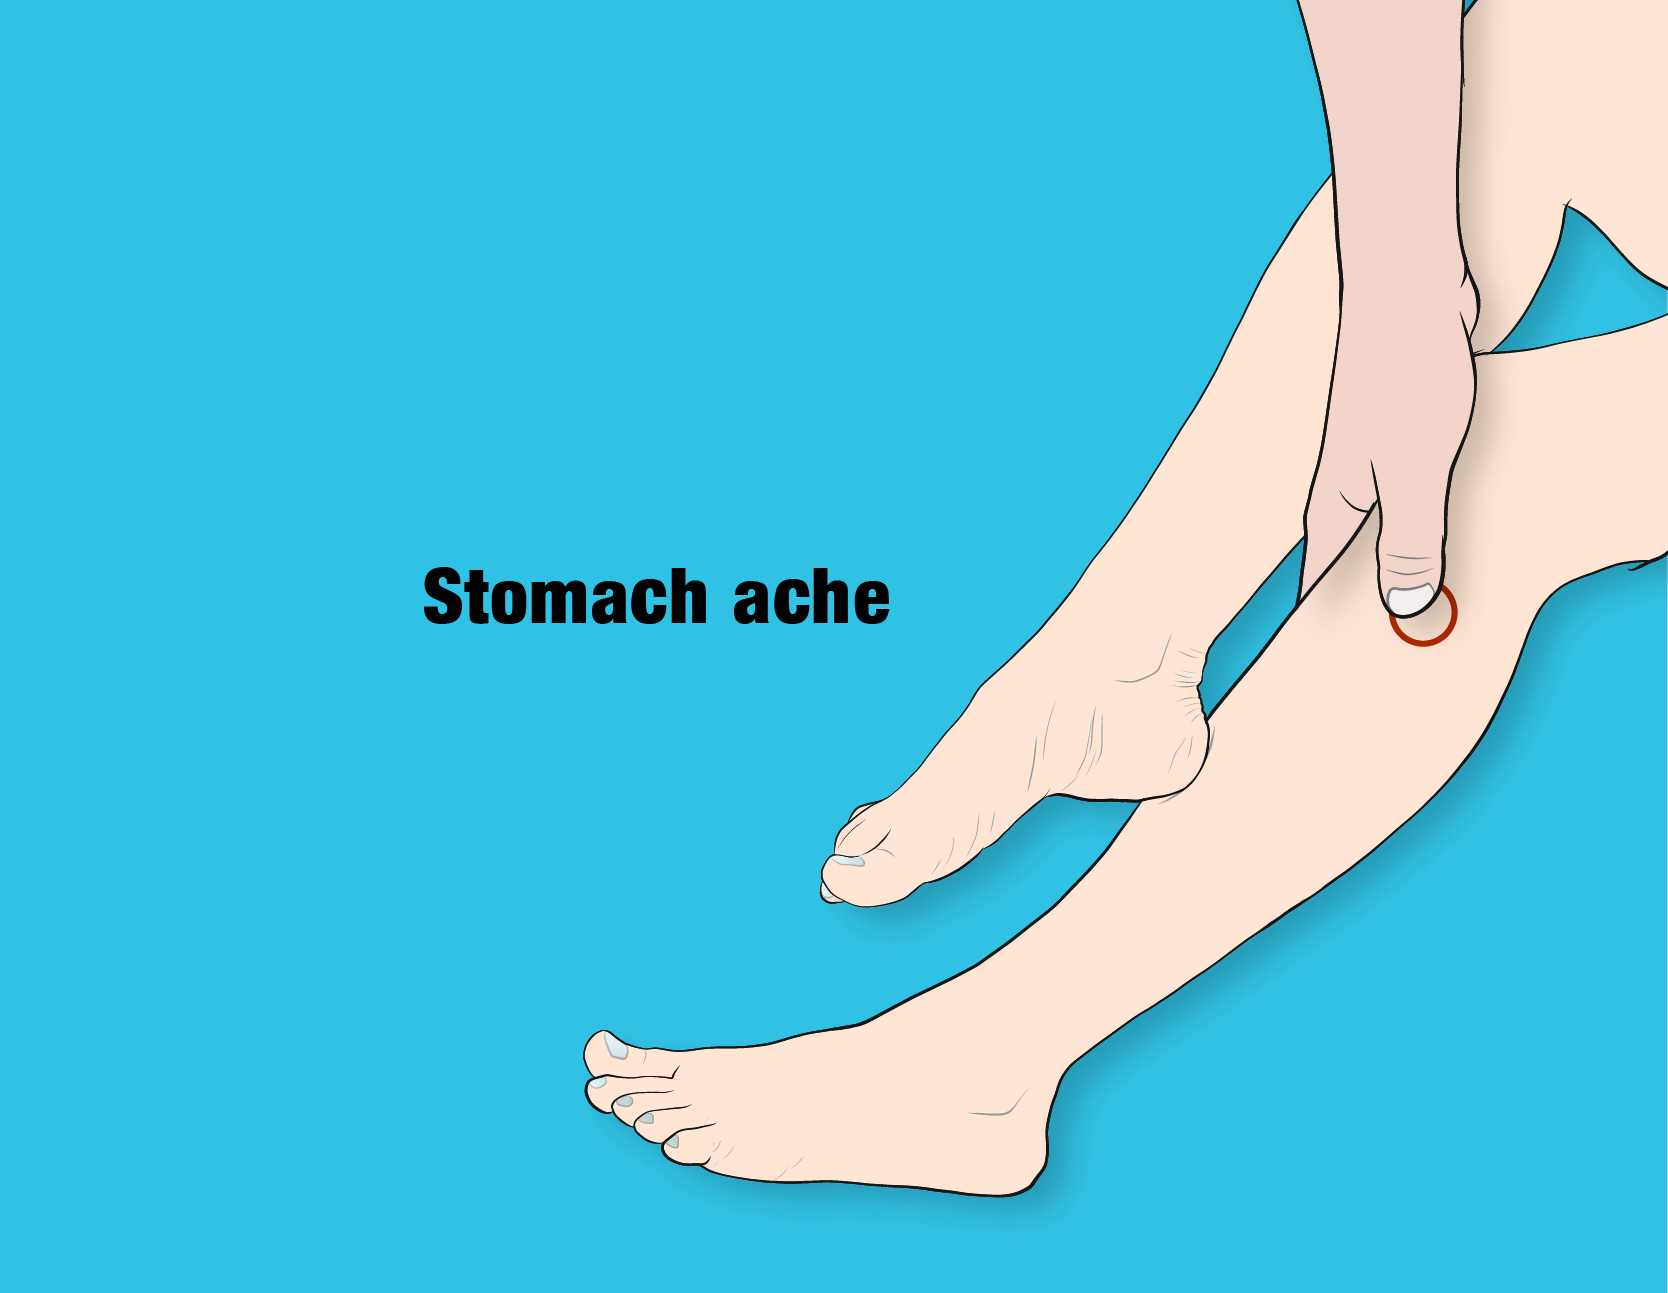 5 Surprisingly Simple Pressure Points That Get Rid Of Annoying Aches And Pains